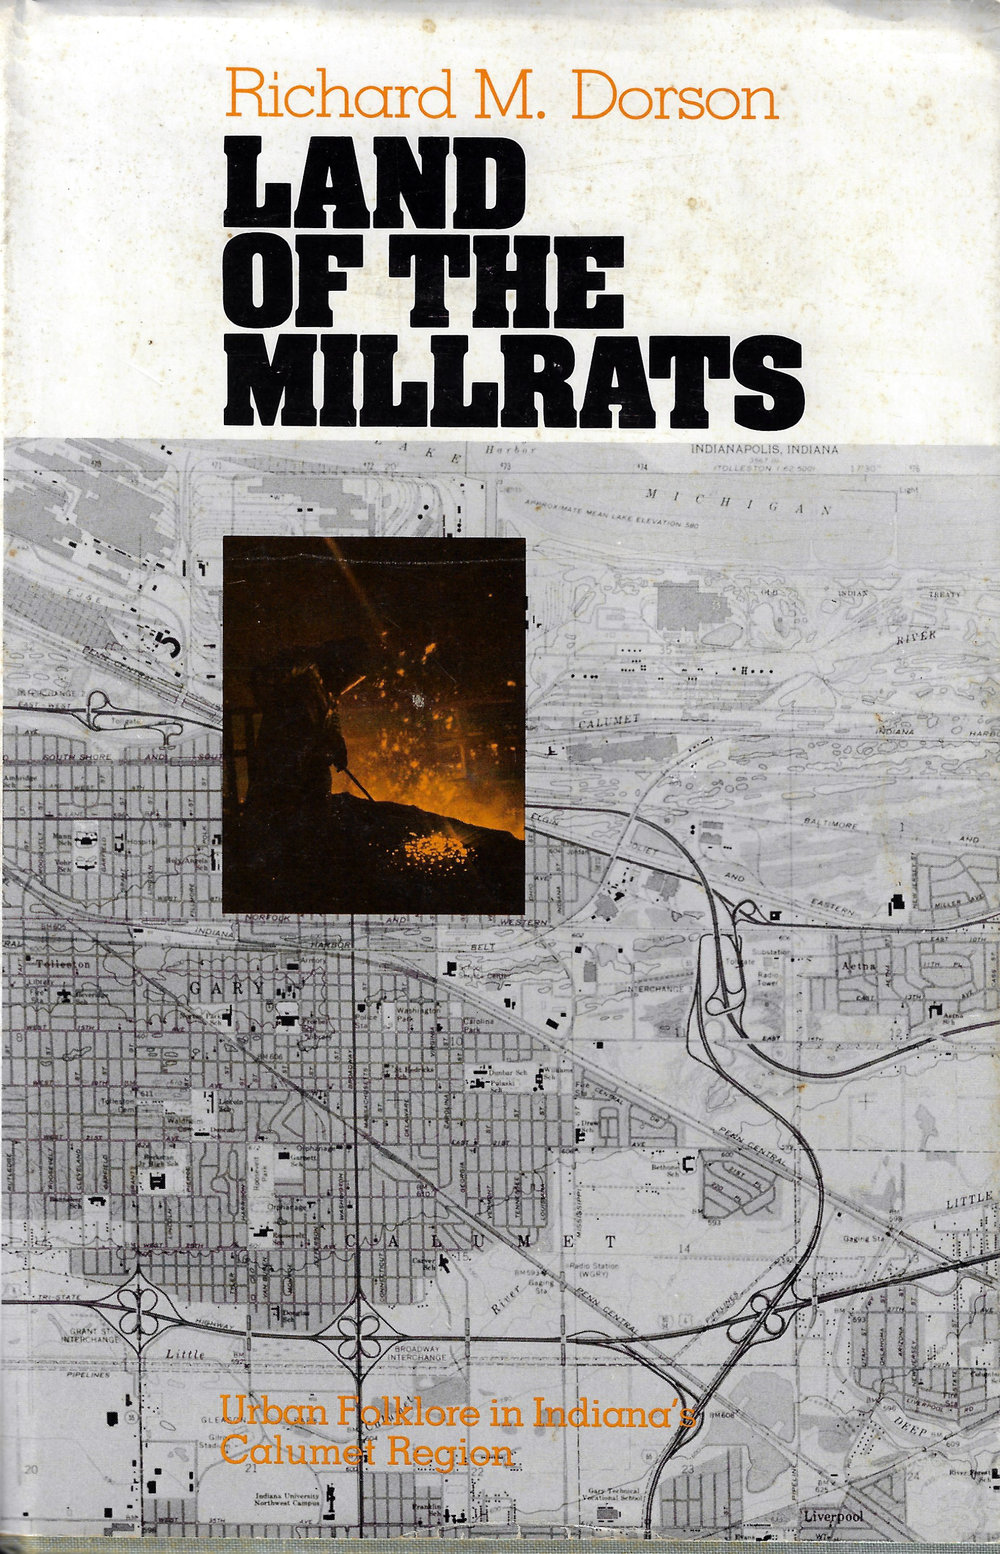 Land of the Millrats By Richard M. Dorson (1981)   Richard Dorson spent a lifetime collecting tales and legends. He was a folklorist at Indiana University. In this book, he explores some of the stories handed down by people living in Northwest Indiana. He devotes about a dozen pages to Whiting-Robertsdale, based on a tour of the city given to him by Calumet College professor Ed Zivich who passed along some of his stories about living in an ethnic community within one of the most heavily industrialized parts of the United States.